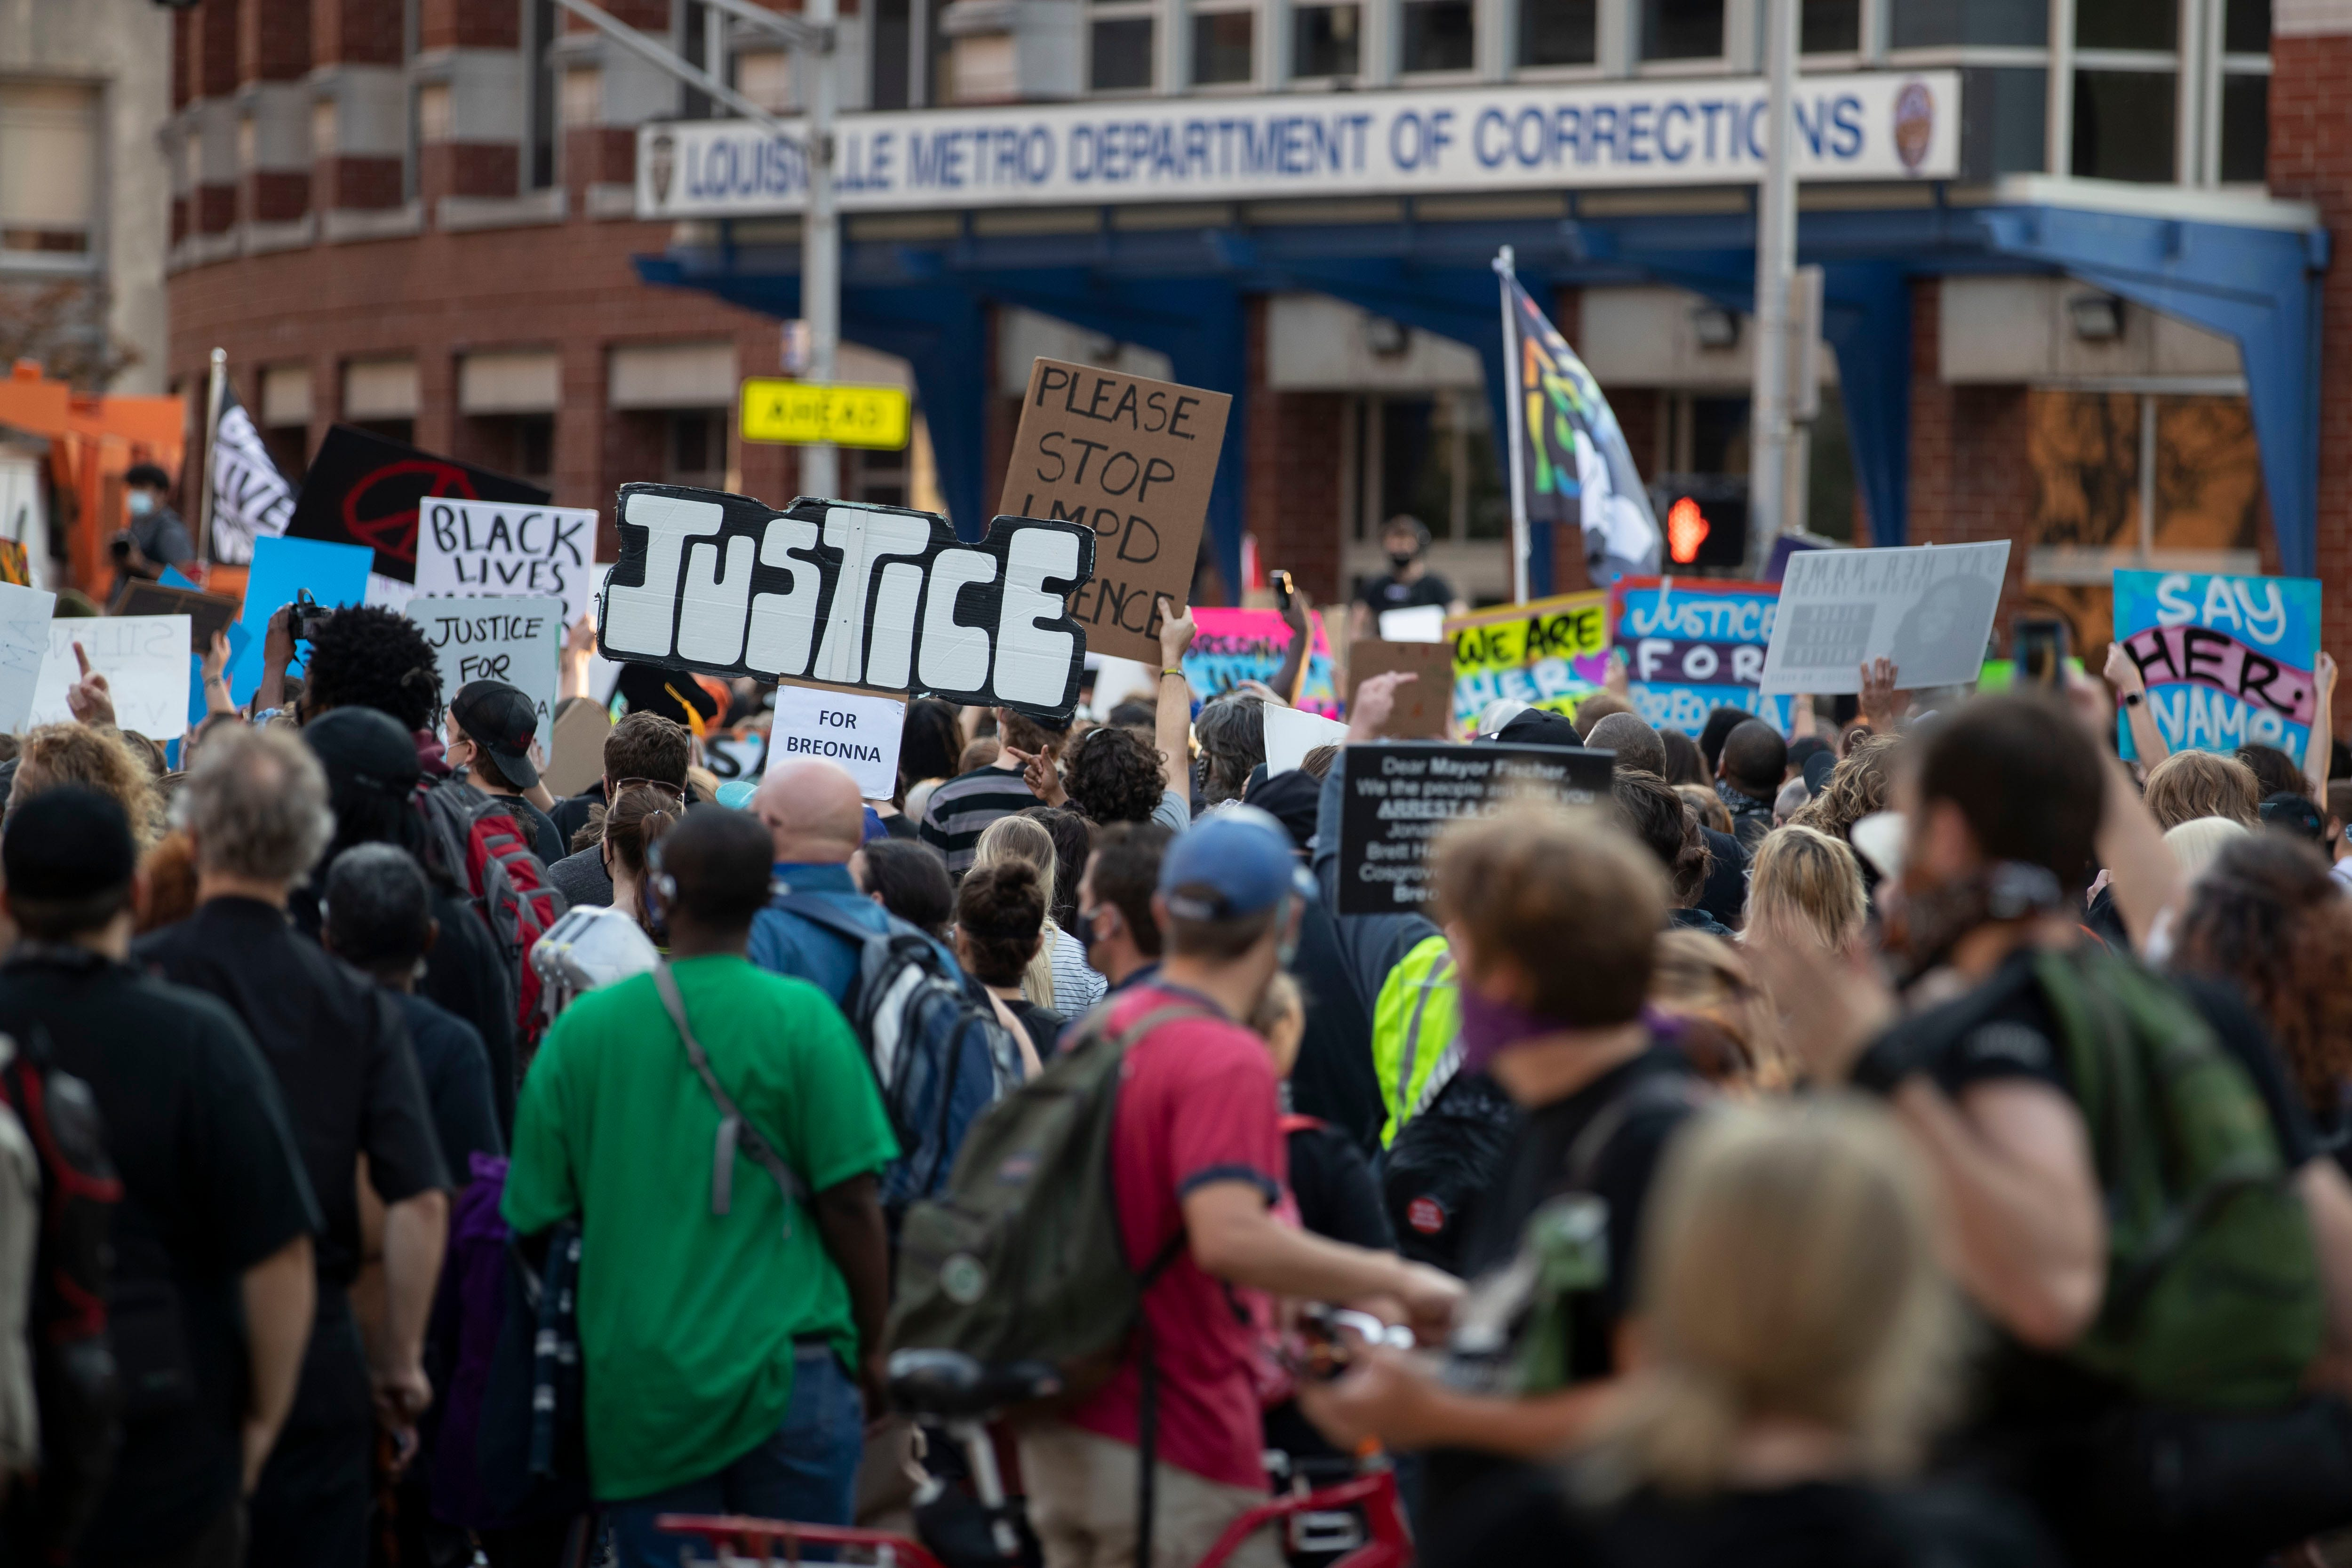 Protesters set out on a march from Jefferson Square Park on Saturday, Sept. 26, 2020, in downtown Louisville.